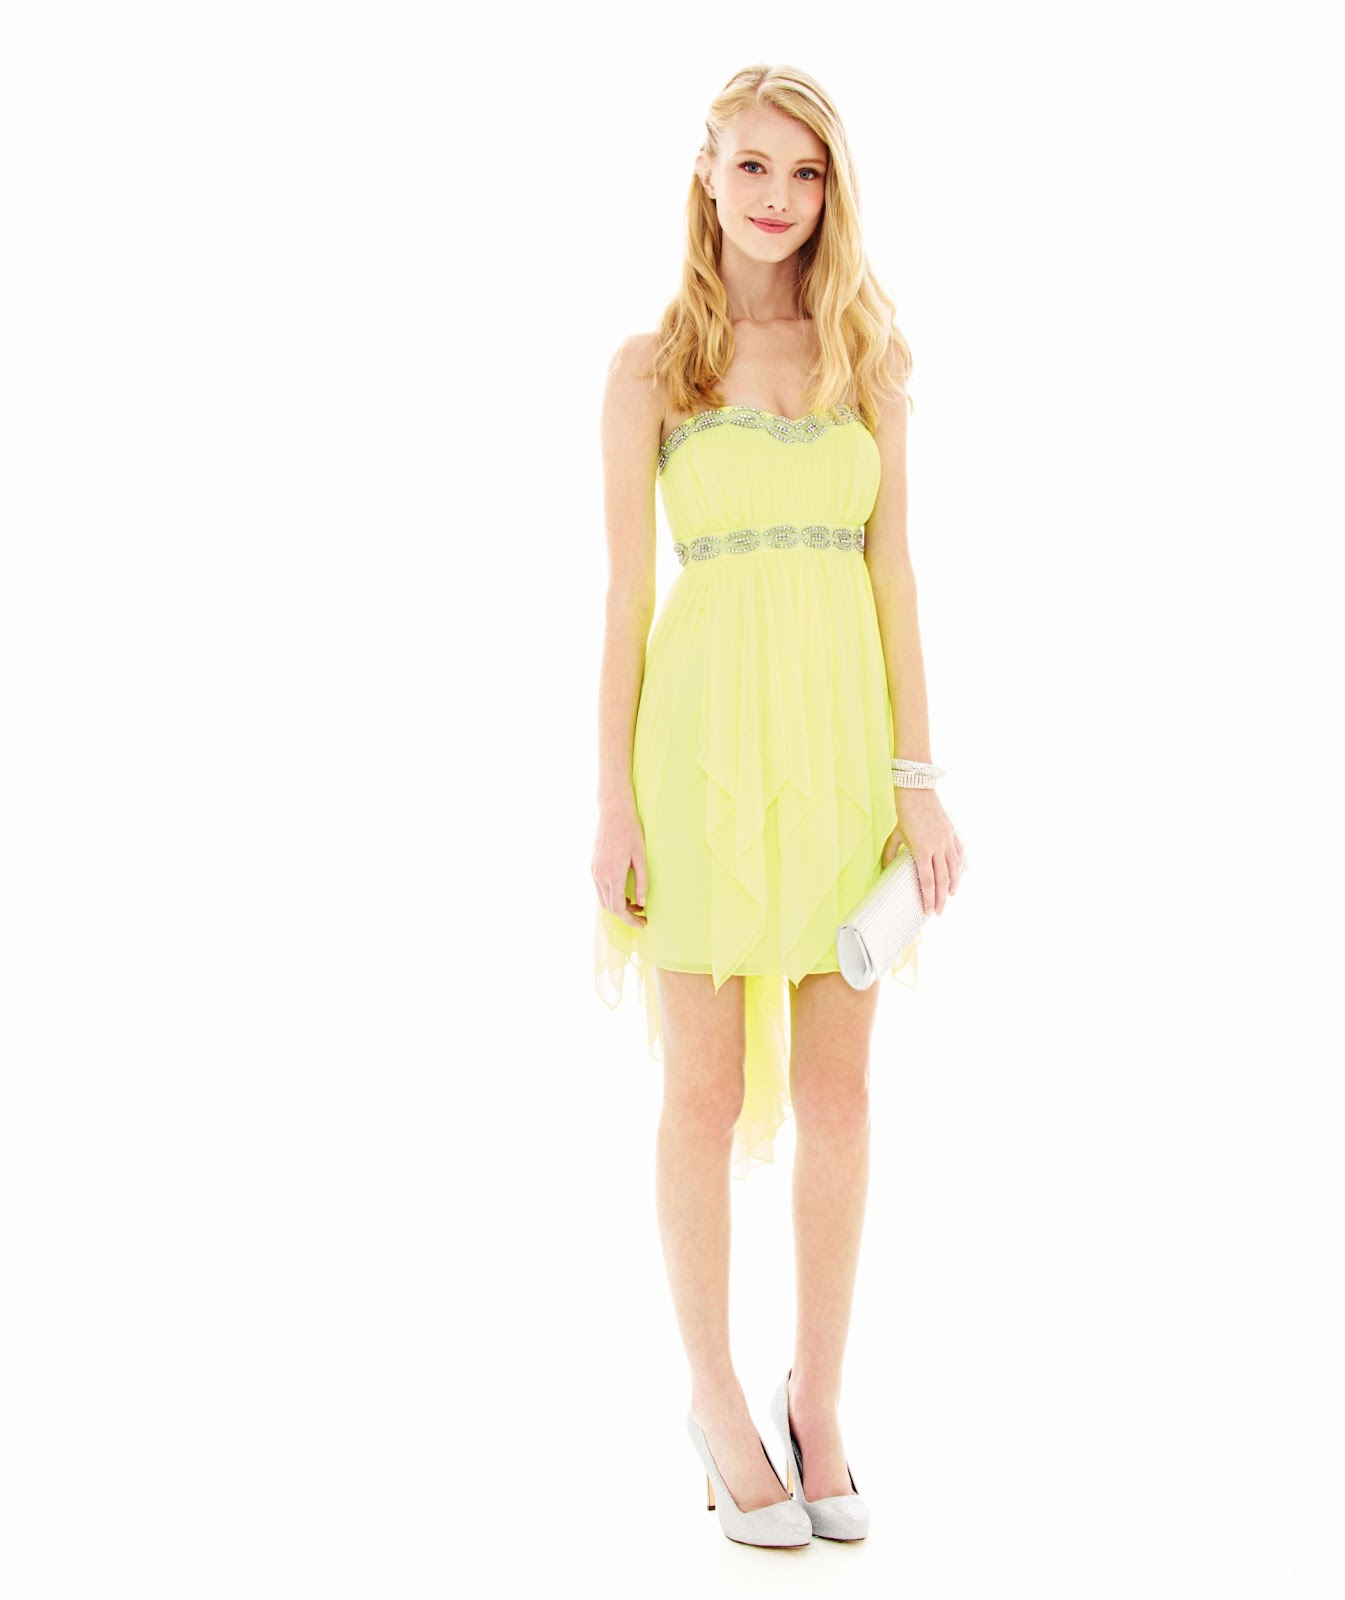 Prom Dresses From Jcpenney - Boutique Prom Dresses